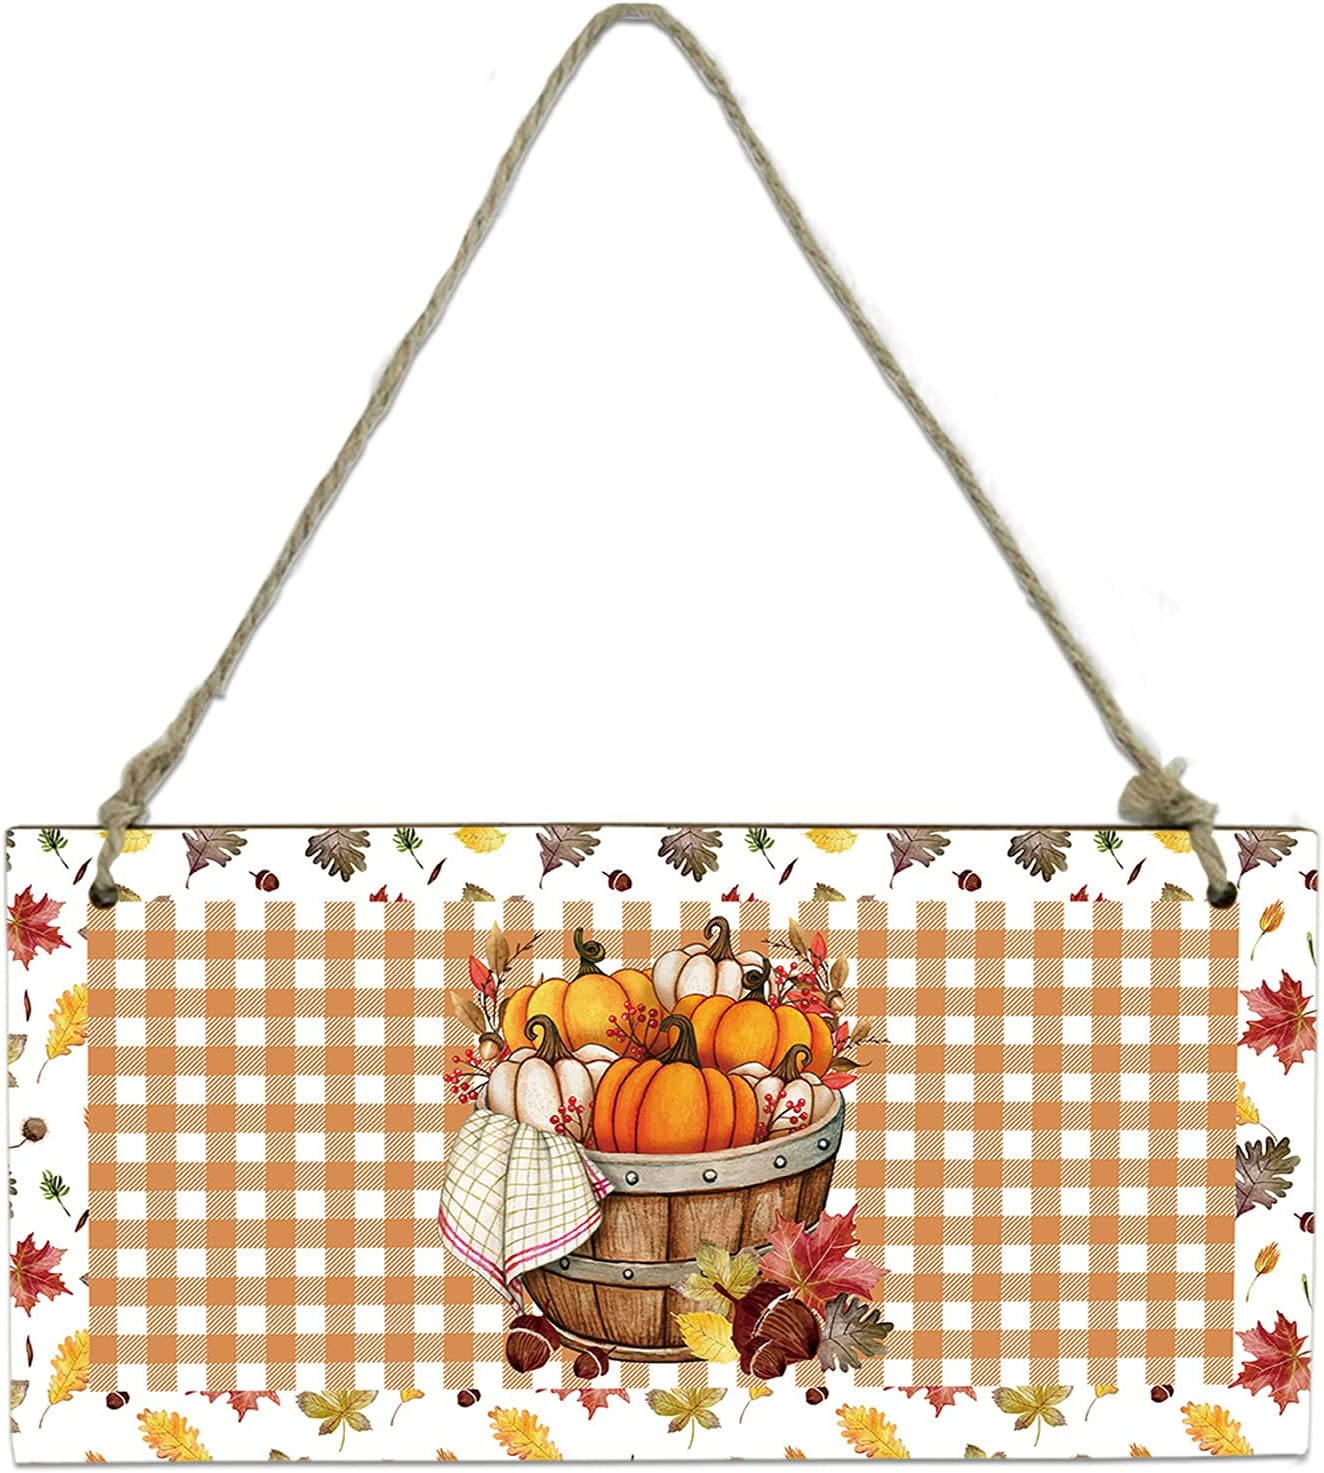 Wood Plaque Wall Hanging Sign Bathroom Pumpki Kitchen for Max 40% OFF Ranking TOP4 Autumn